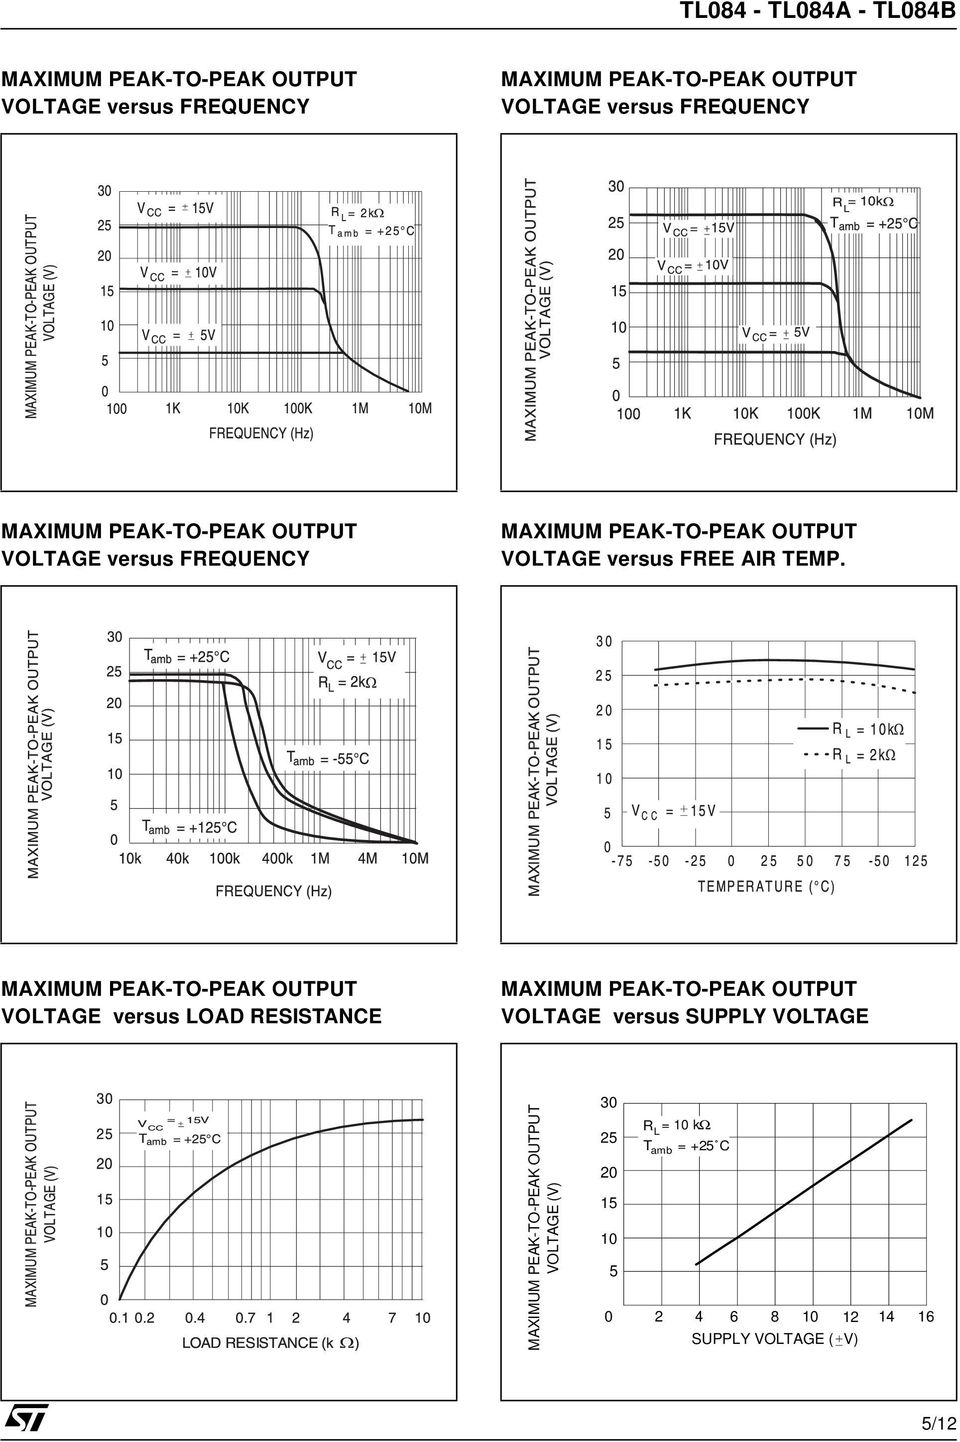 MAXIMUM PEAKTOPEAK OUTPUT VOLTAGE versus LOAD RESISTANCE MAXIMUM PEAKTOPEAK OUTPUT VOLTAGE versus SUPPLY